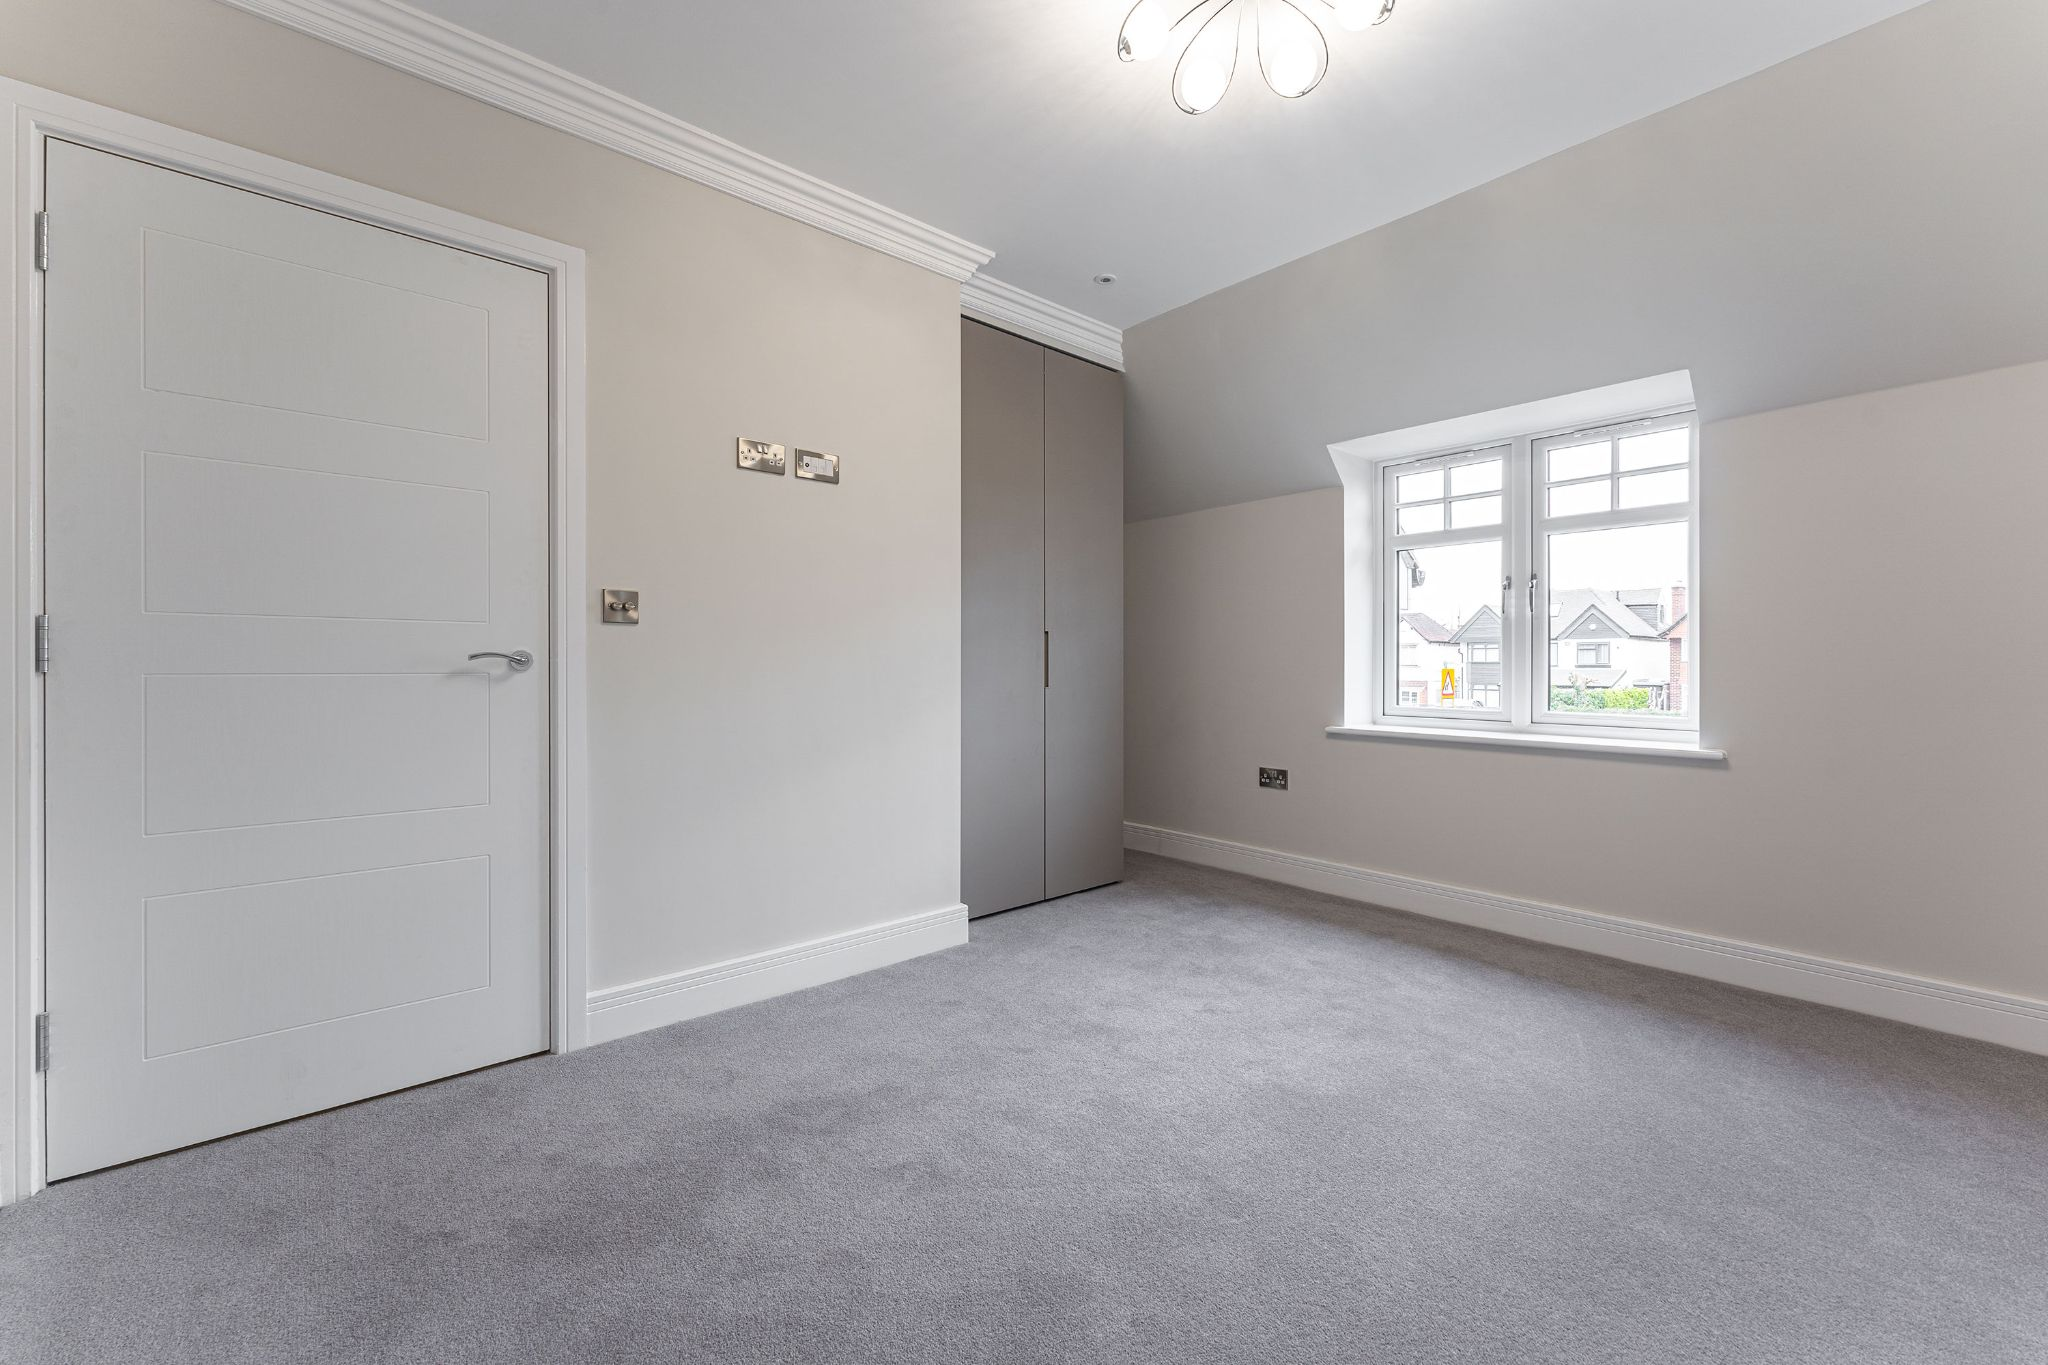 2 bedroom apartment flat/apartment SSTC in Solihull - Photograph 19.